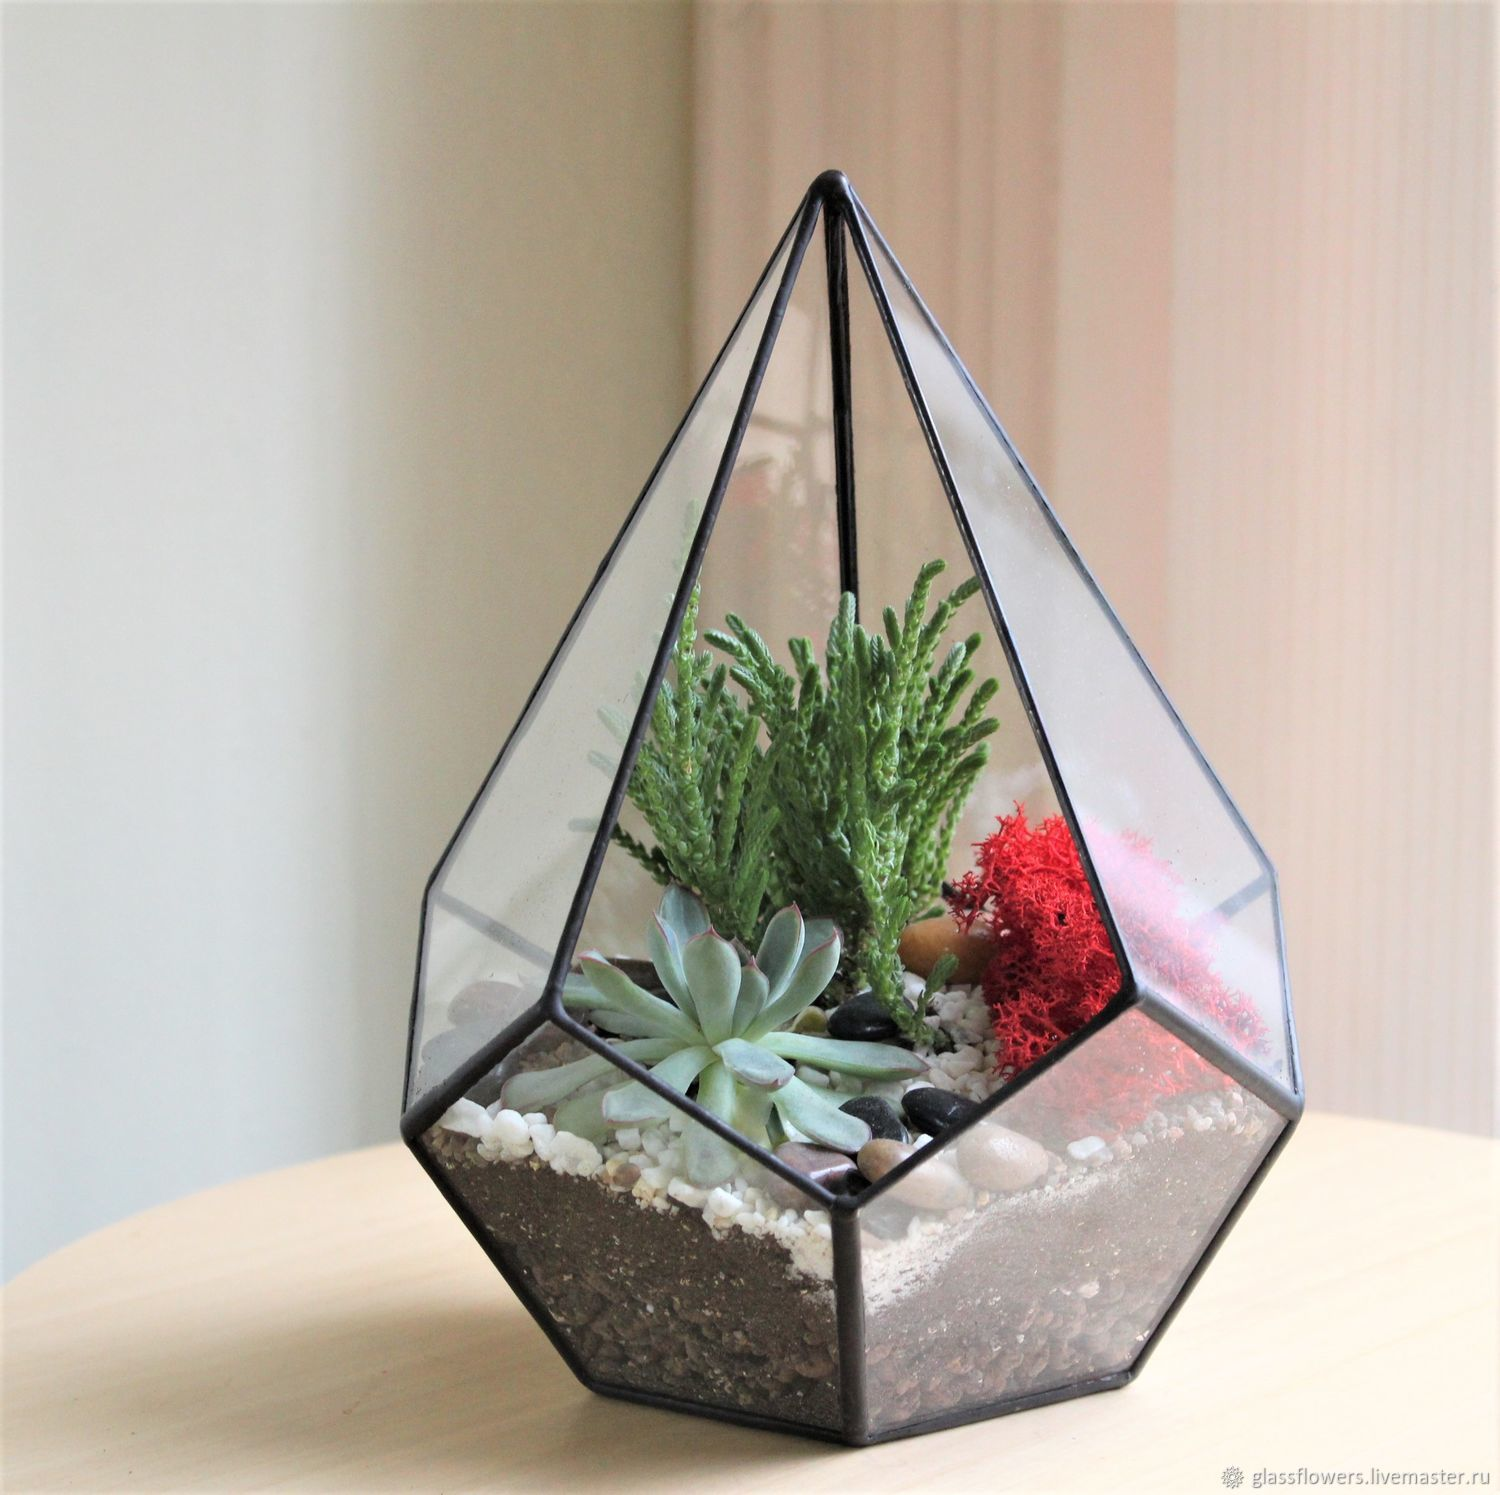 Florarium Drop with succulents and moss, height 22 cm, Florariums, St. Petersburg,  Фото №1